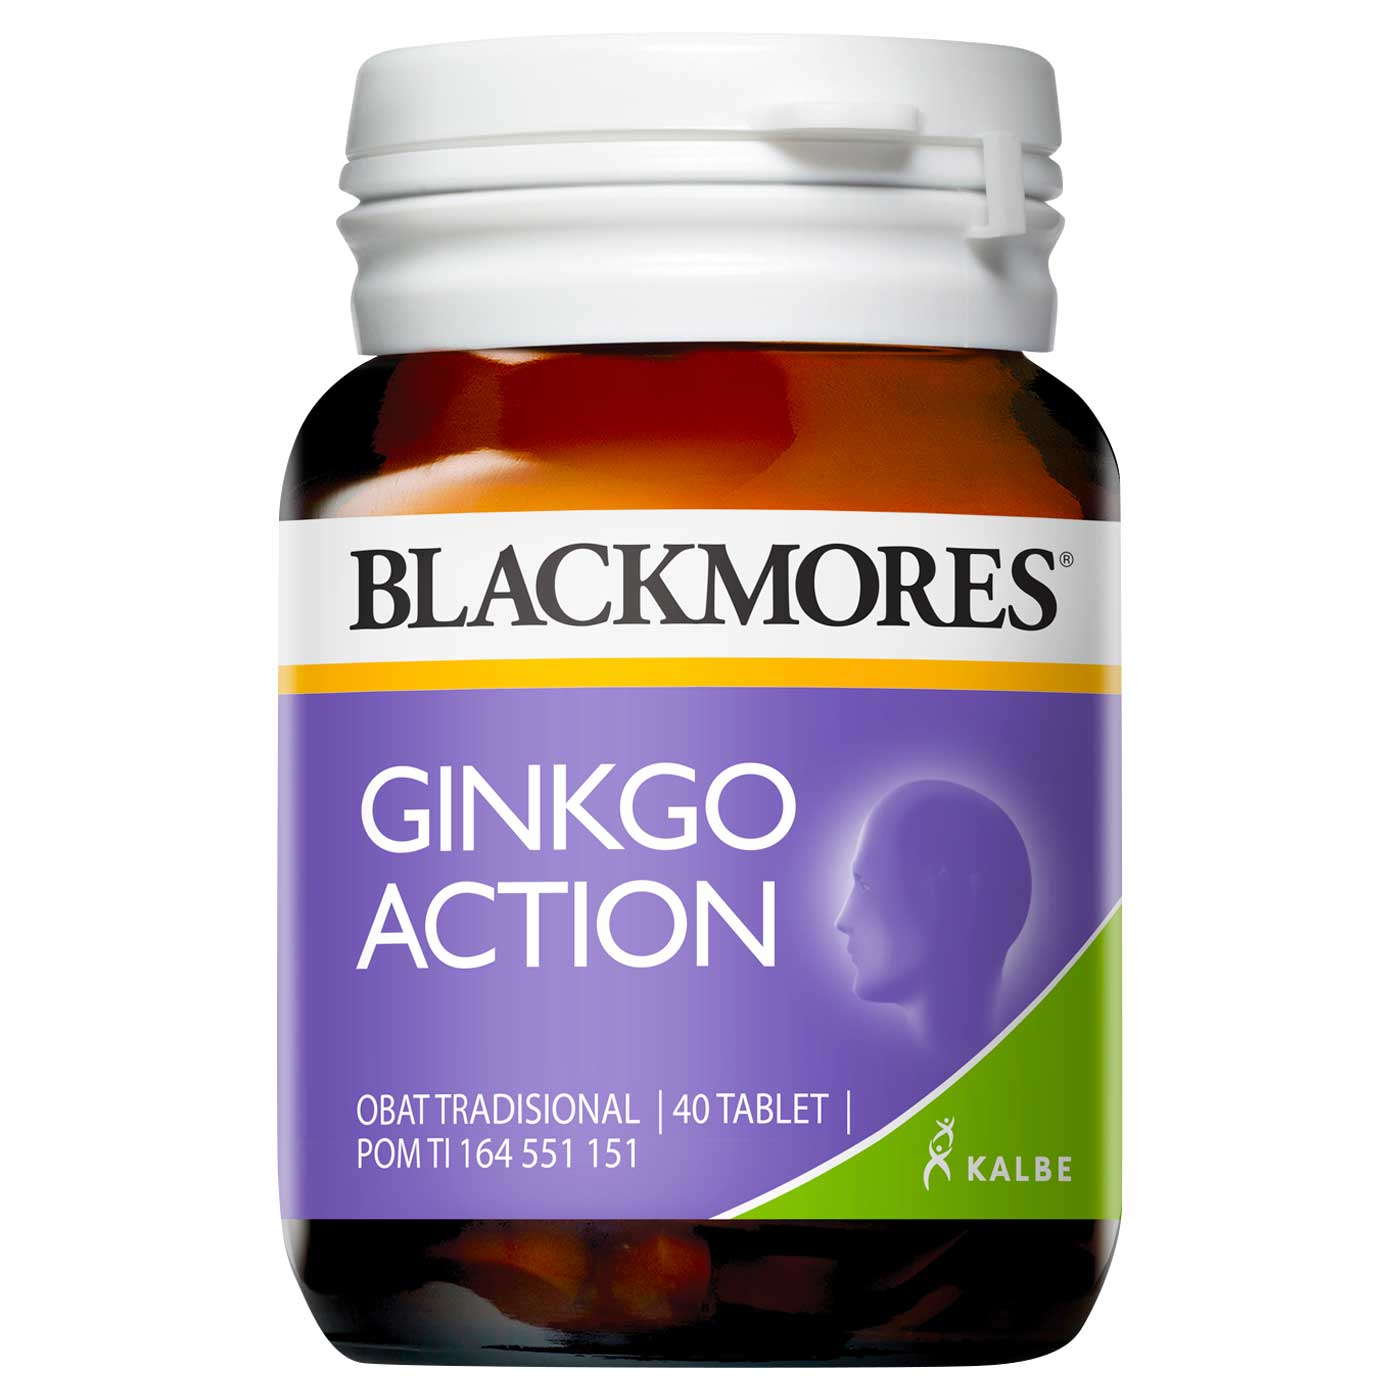 Blackmores Ginkgo Action 40 Tablets 1